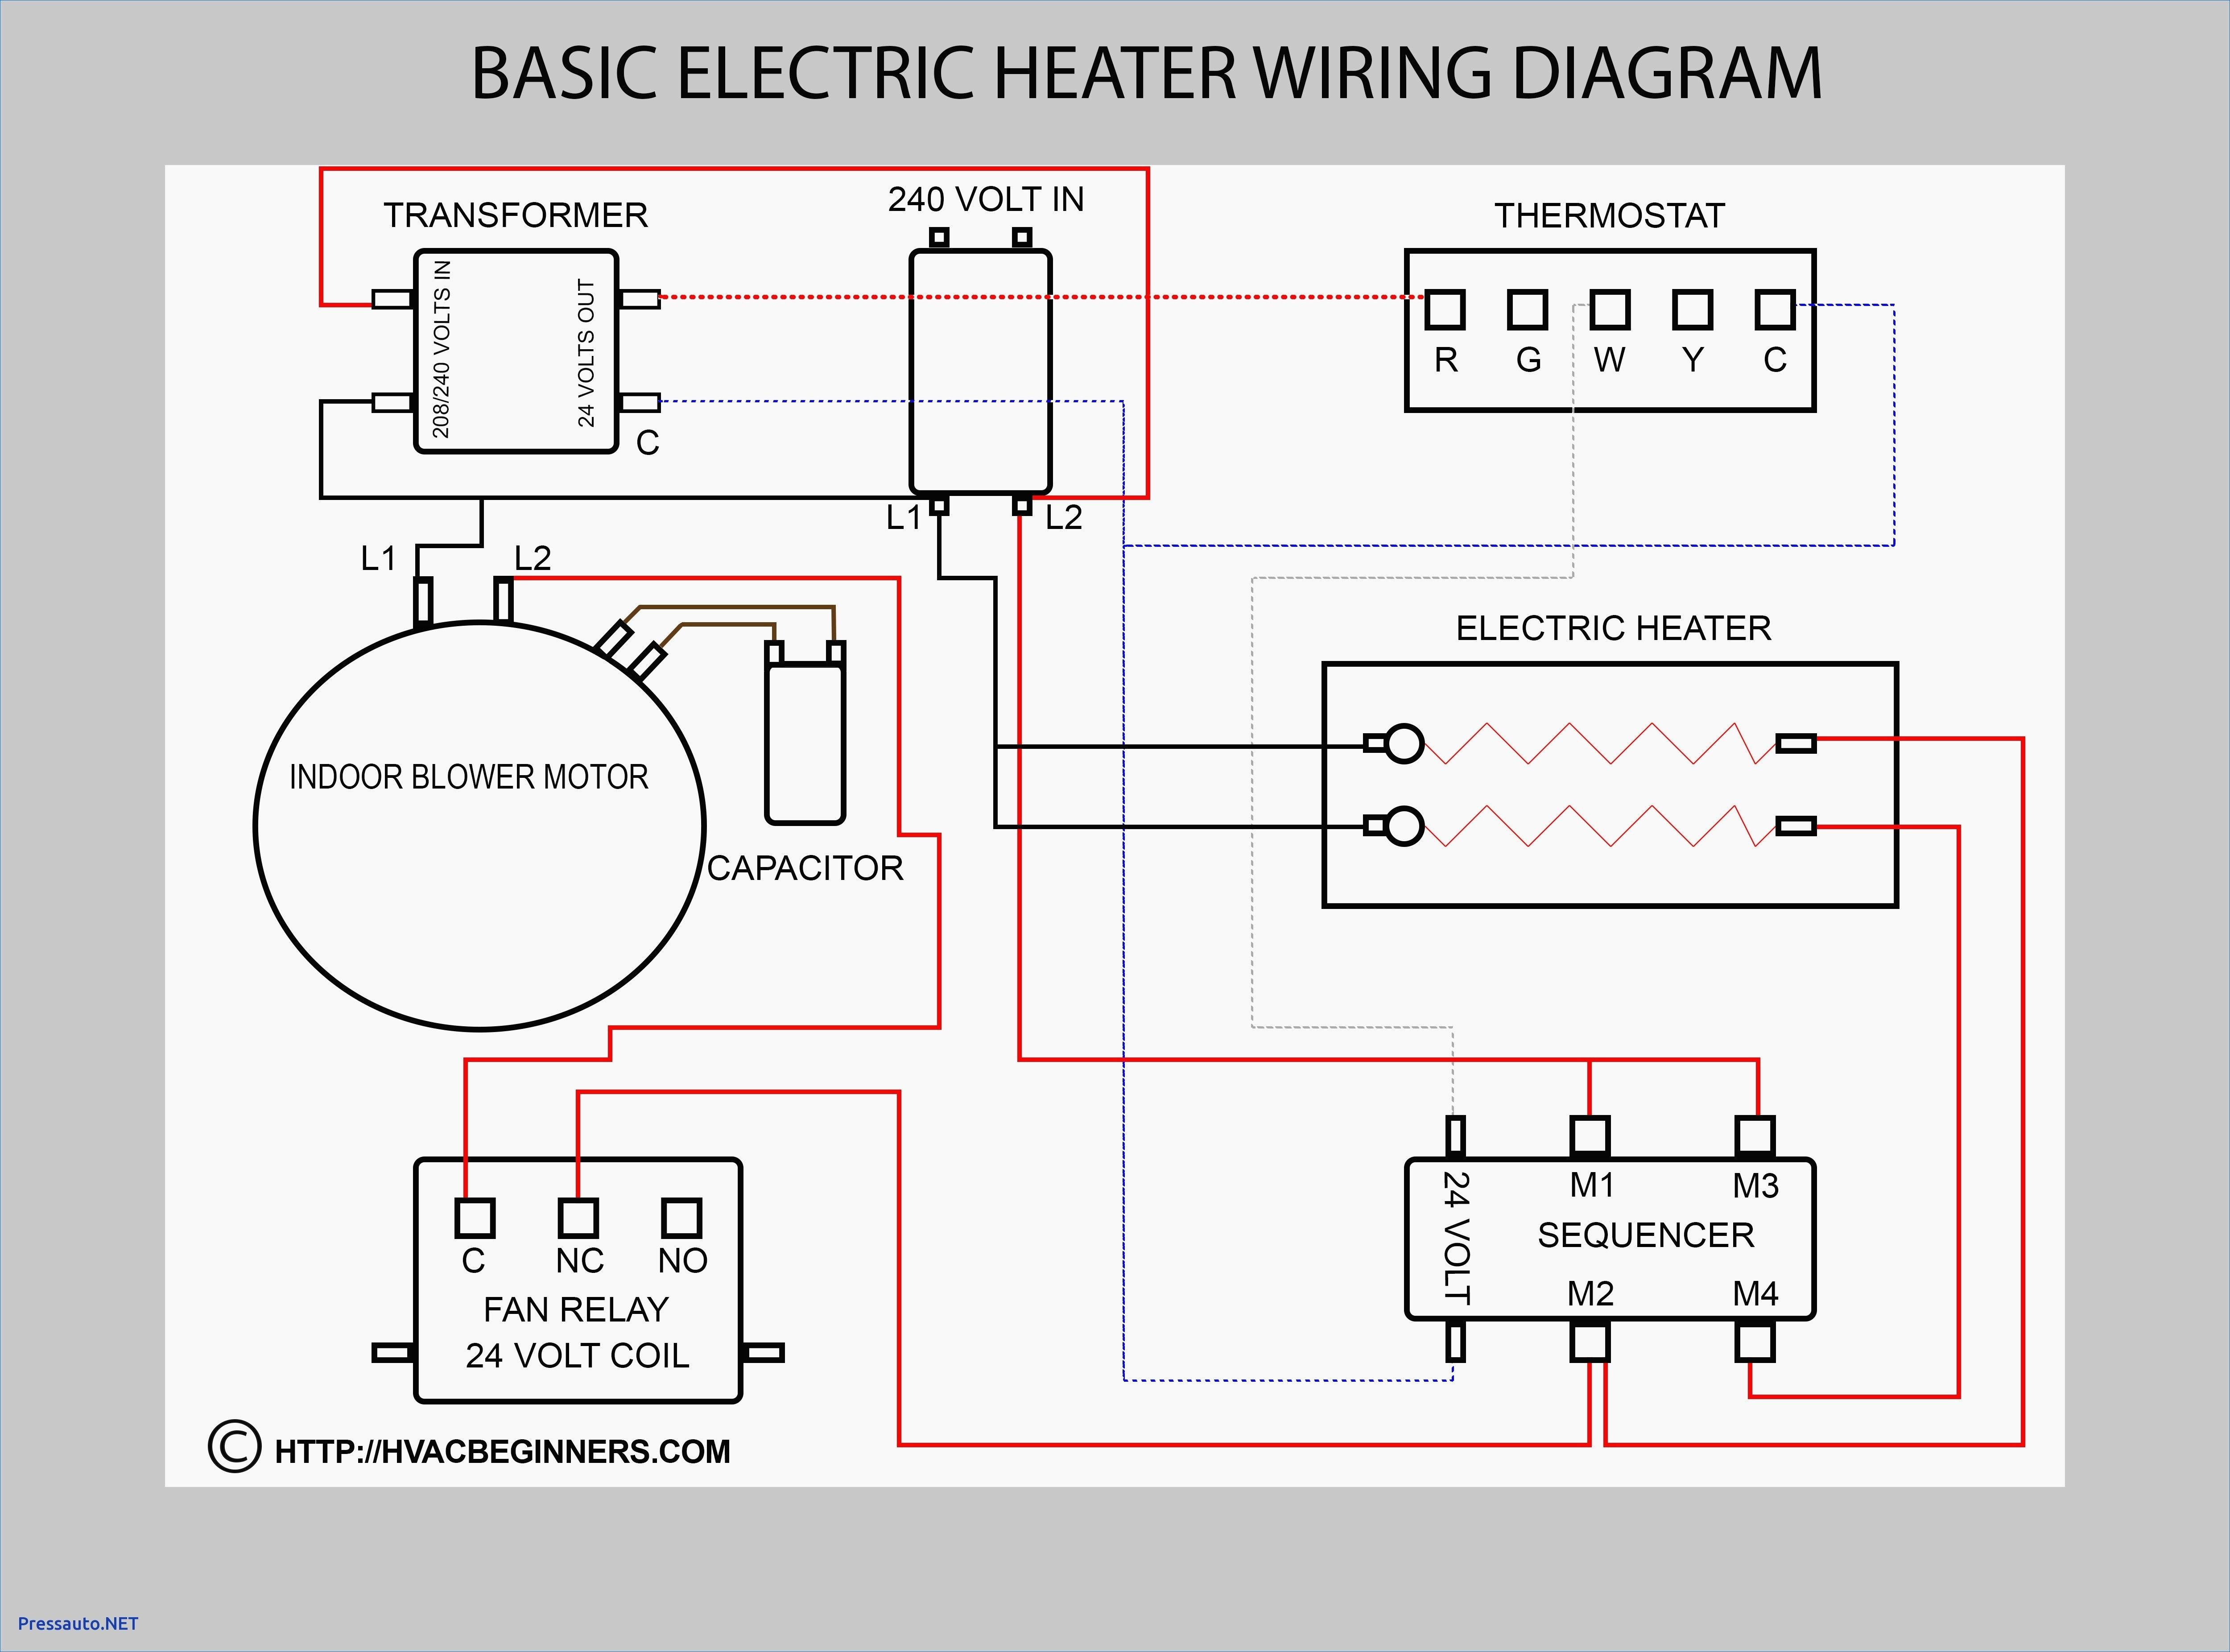 Luxury Wiring Diagram for A Y Plan Heating System #diagrams ... on 240 volt electrical wiring, furnace blower wiring diagram, 240 volt wiring size, 110 volt heater wiring diagram, 220 volt heater wiring diagram, electric hot water tank wiring diagram, 120 volt outlet diagram, midwest spa disconnect wiring diagram, xlerator hand dryer wiring diagram, 240 volt switch wiring, baldor motor wiring diagram, 240 volt circuit diagram, breaker box wiring diagram, 3 phase contactor wiring diagram, 50 amp outlet wiring diagram, thermostat wiring diagram, 120 240 motor wiring diagram, electric meter socket wiring diagram,